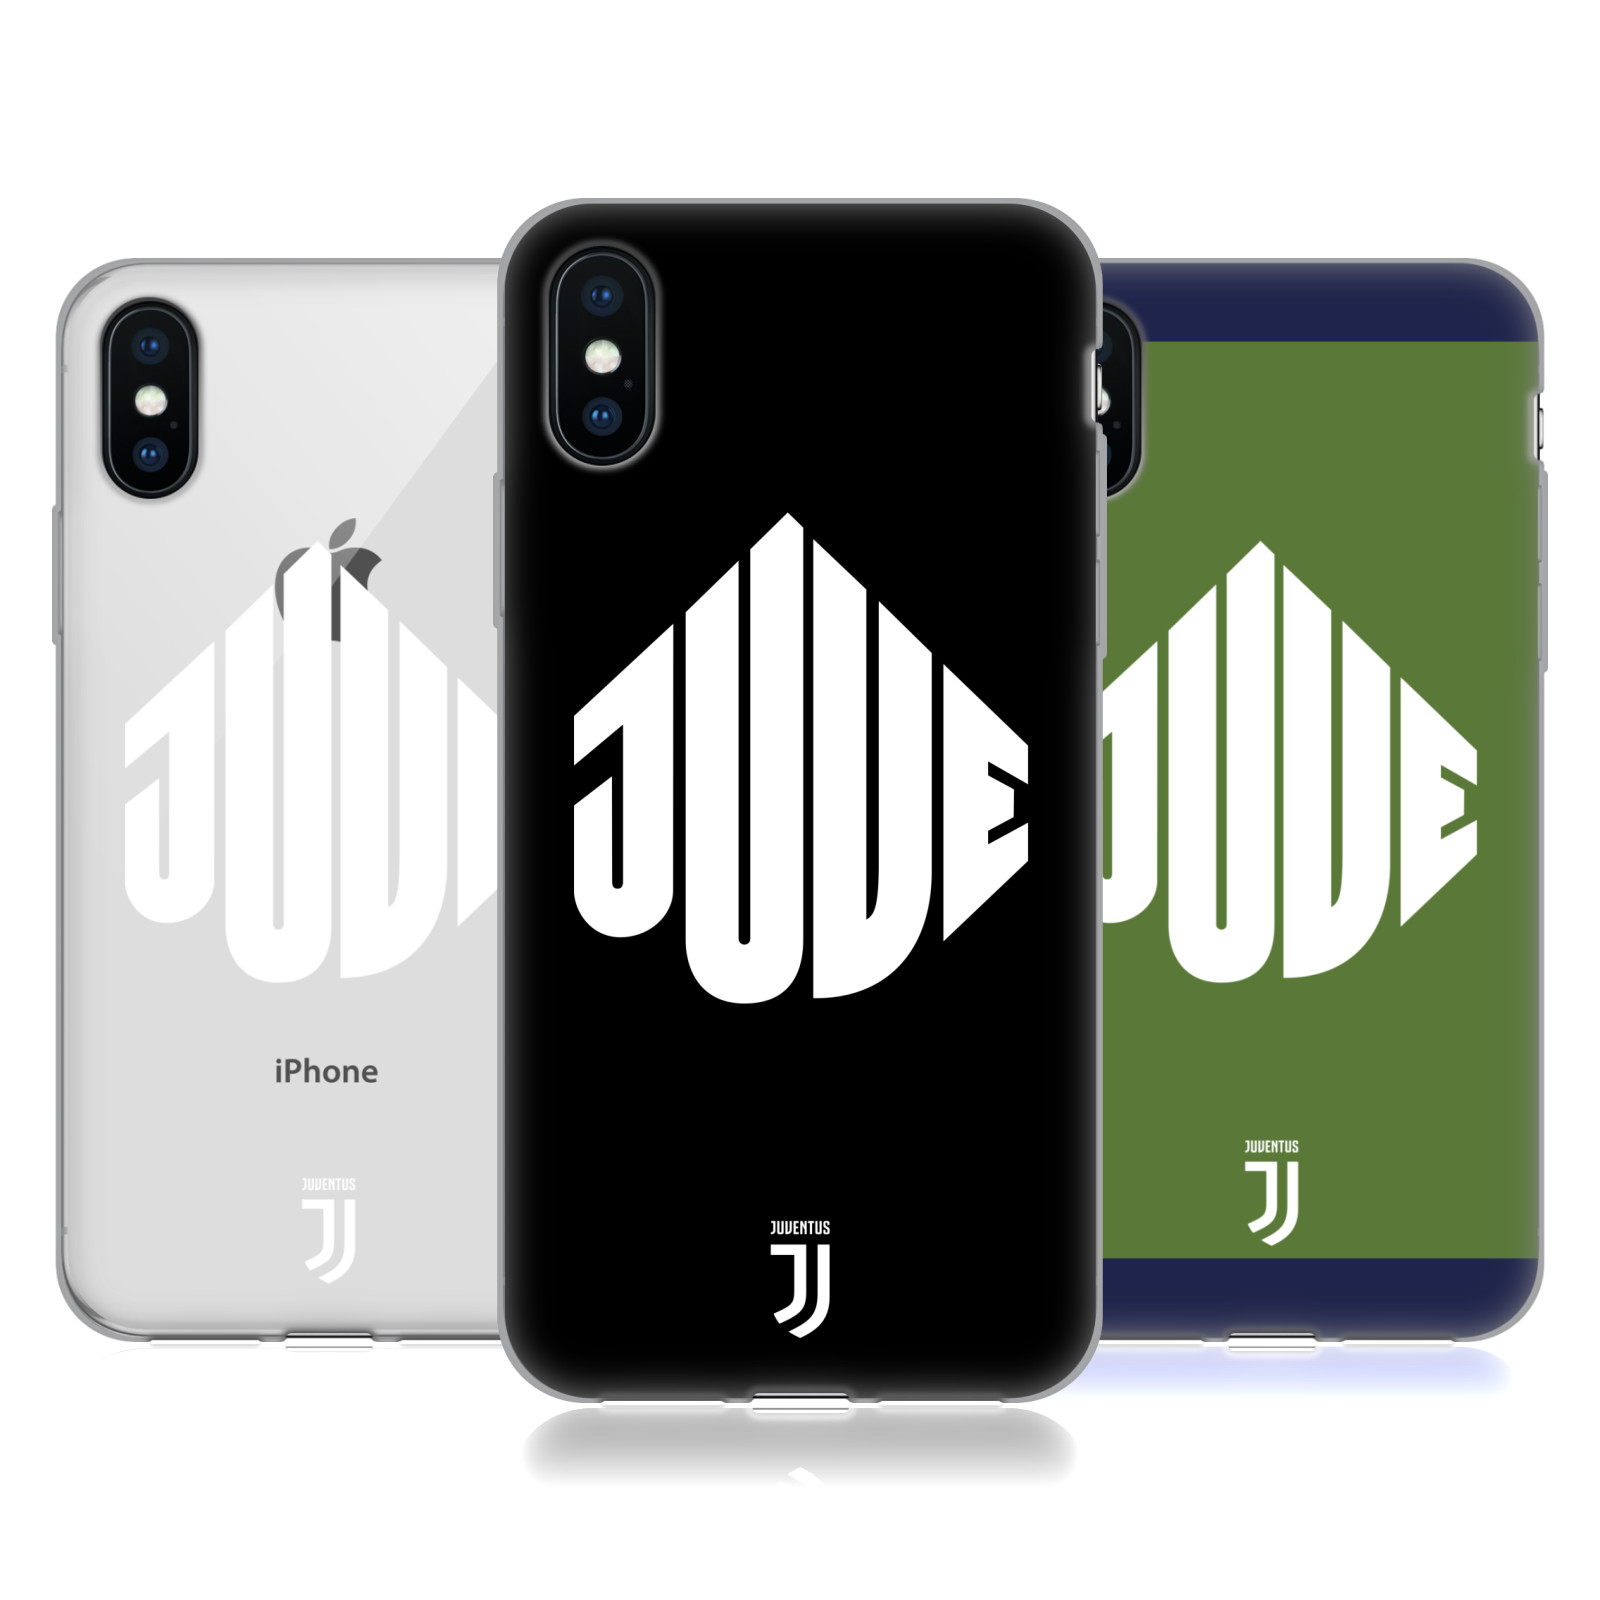 Juventus Football Club <!--translate-lineup-->2018/19 Street Badge<!--translate-lineup-->